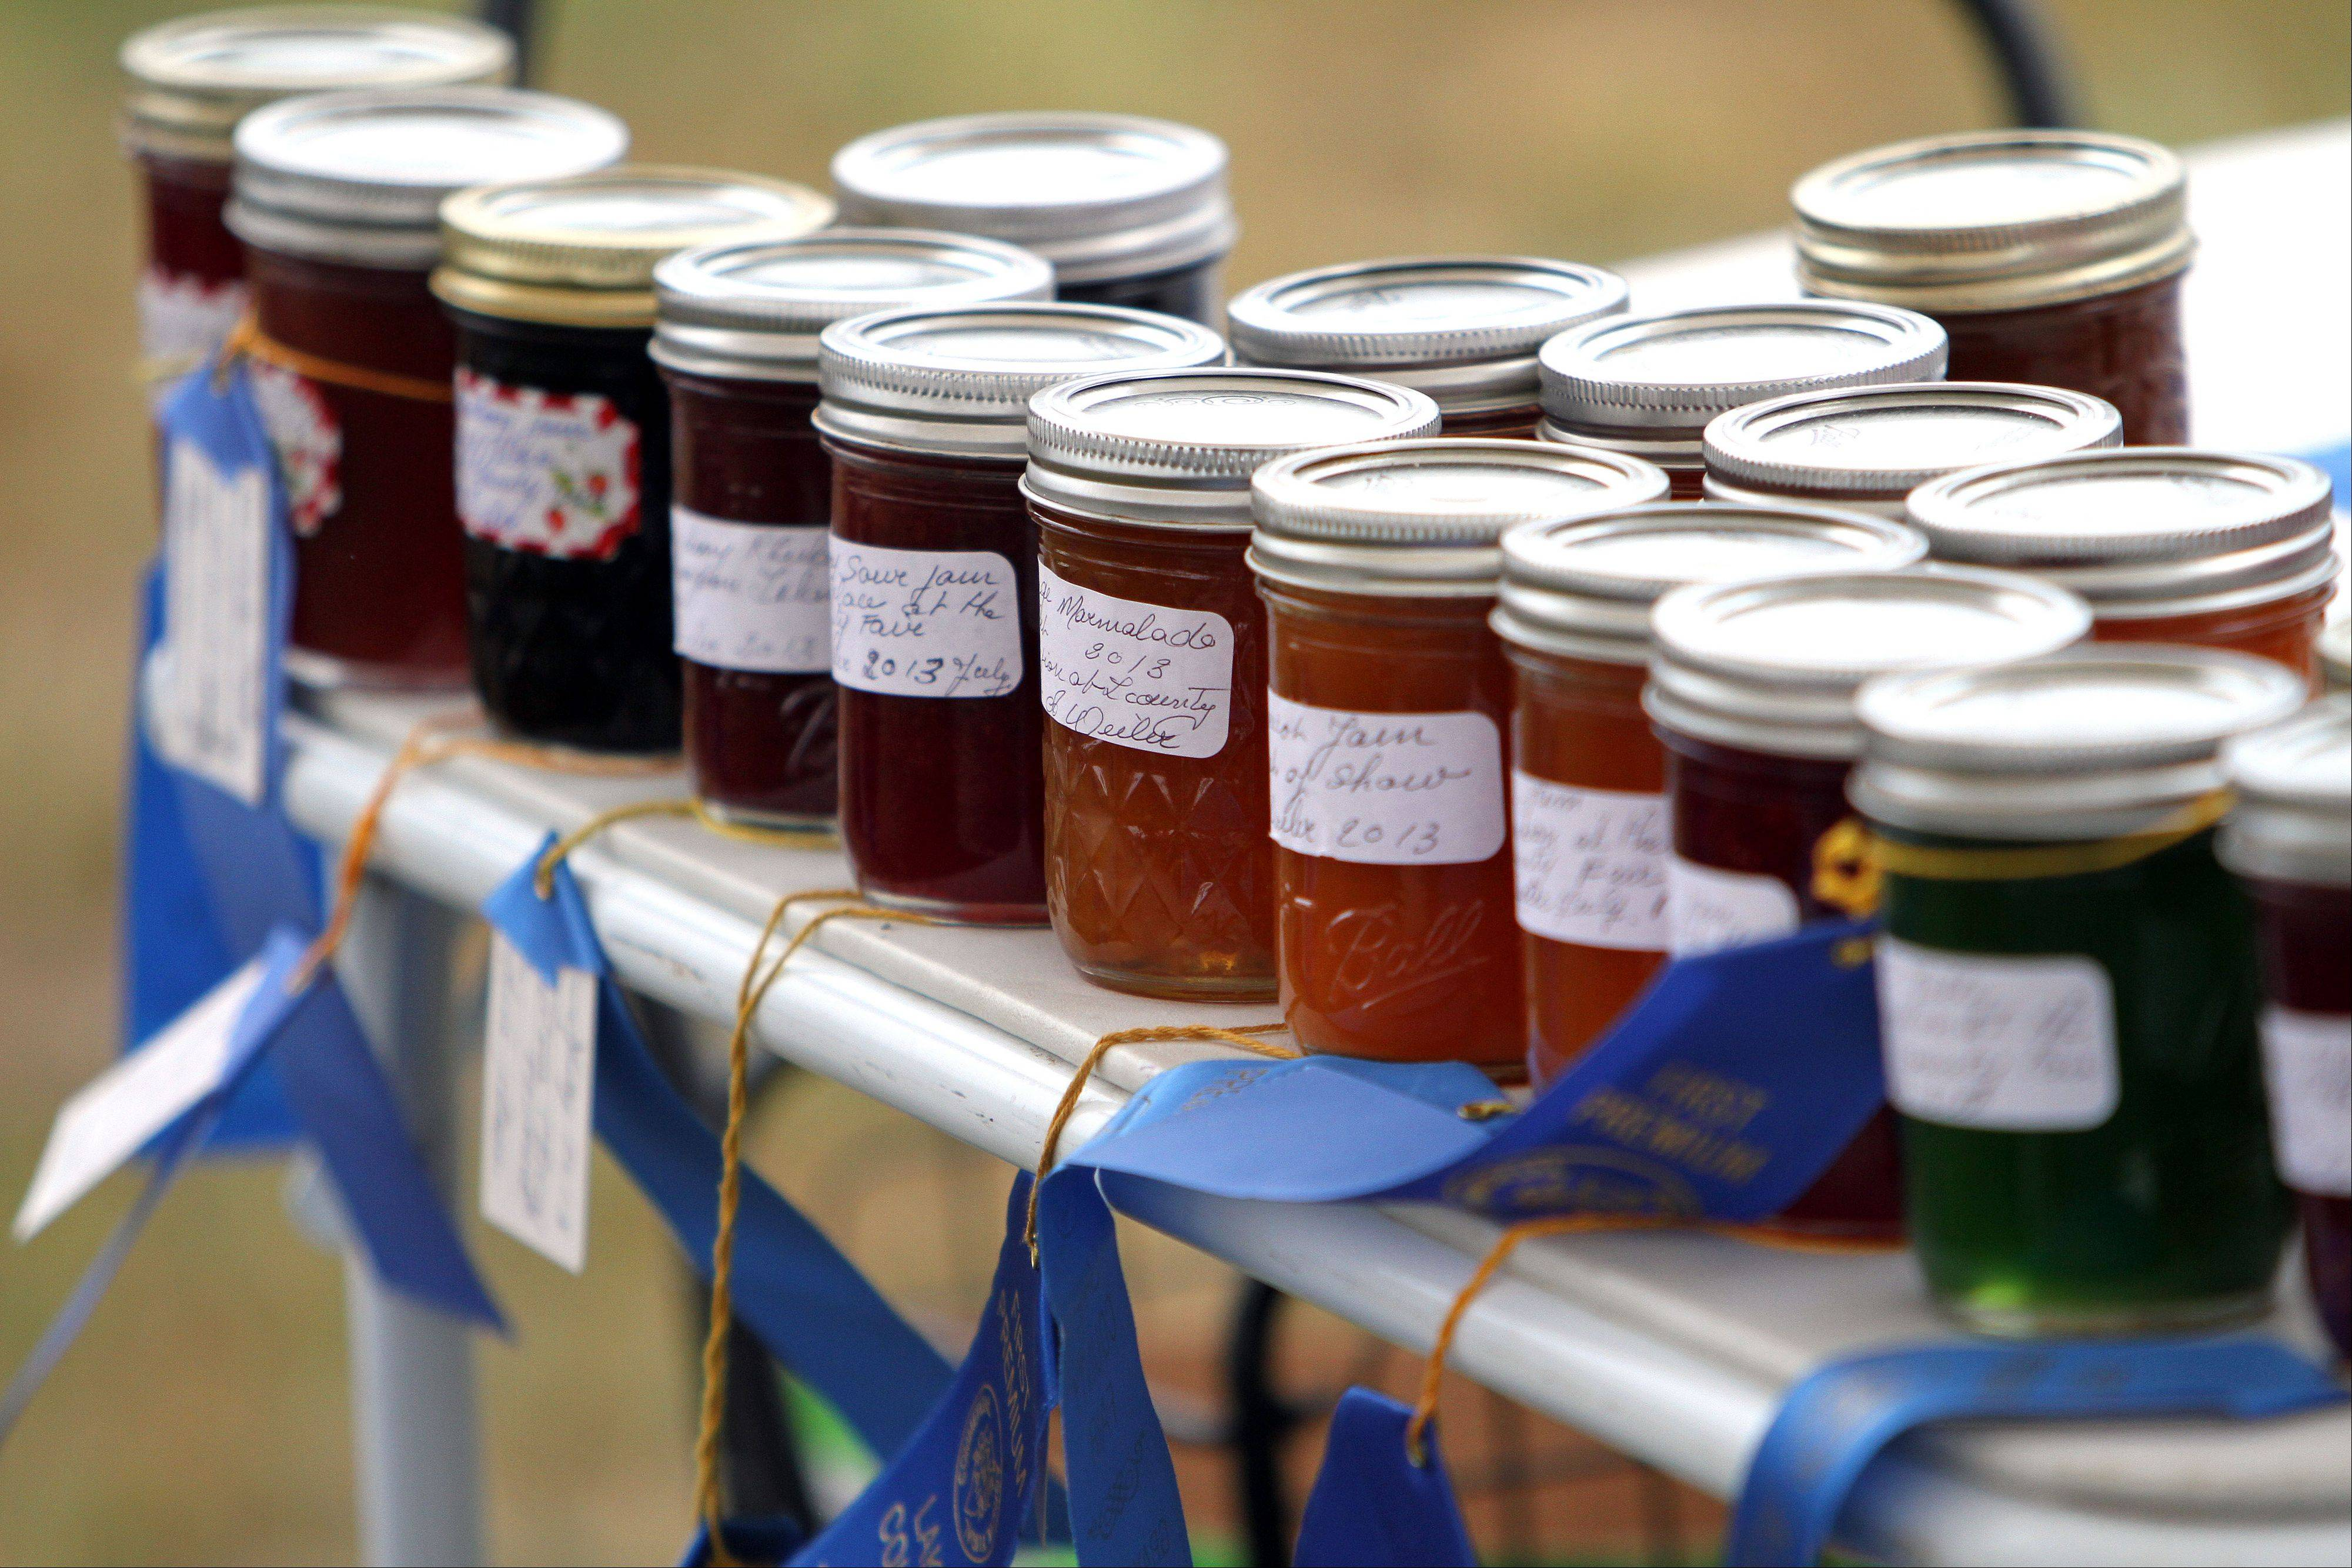 Award-winning marmalade is on display in the horse judging area.